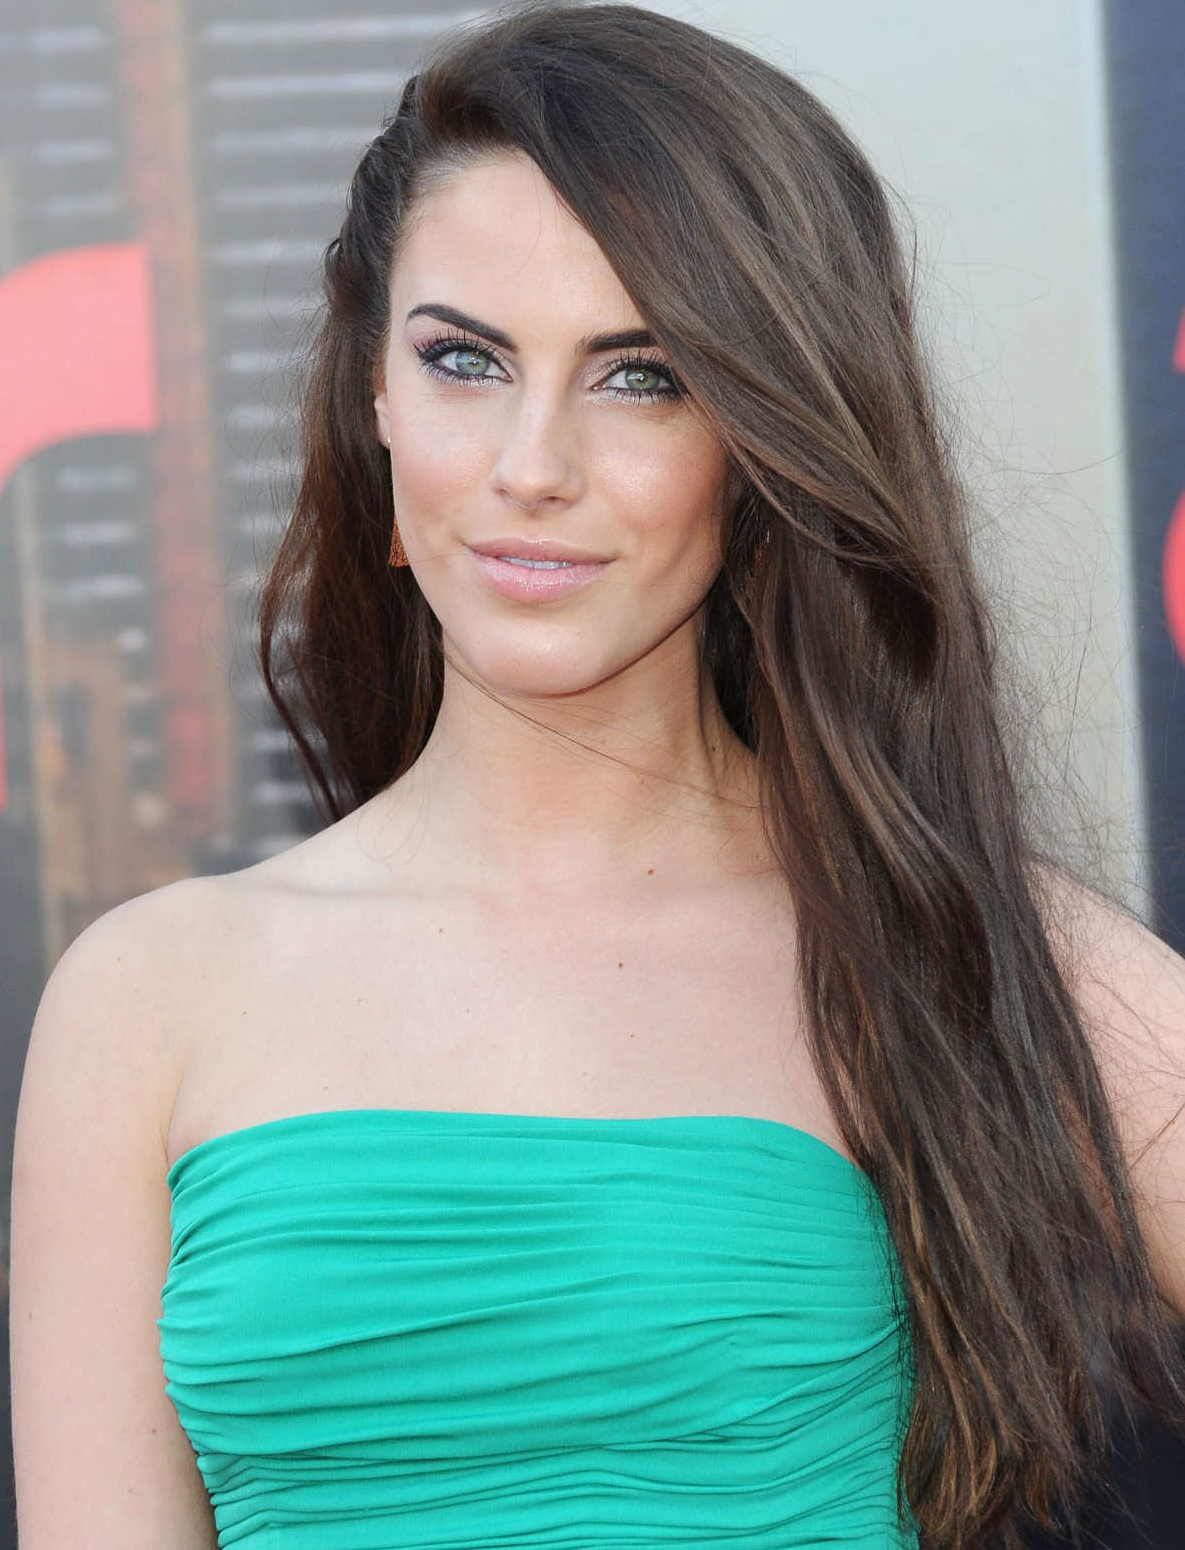 Jessica_lowndes_hot_4jpg